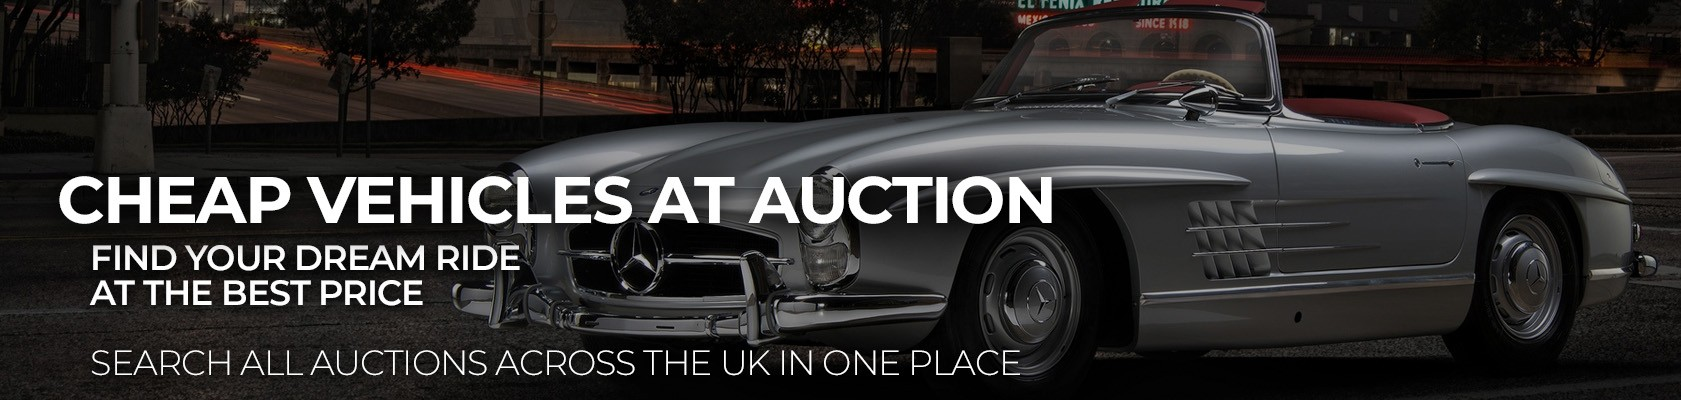 Car Auctions Used Cars For Sale Uk Auction Search Search All Uk Auctions